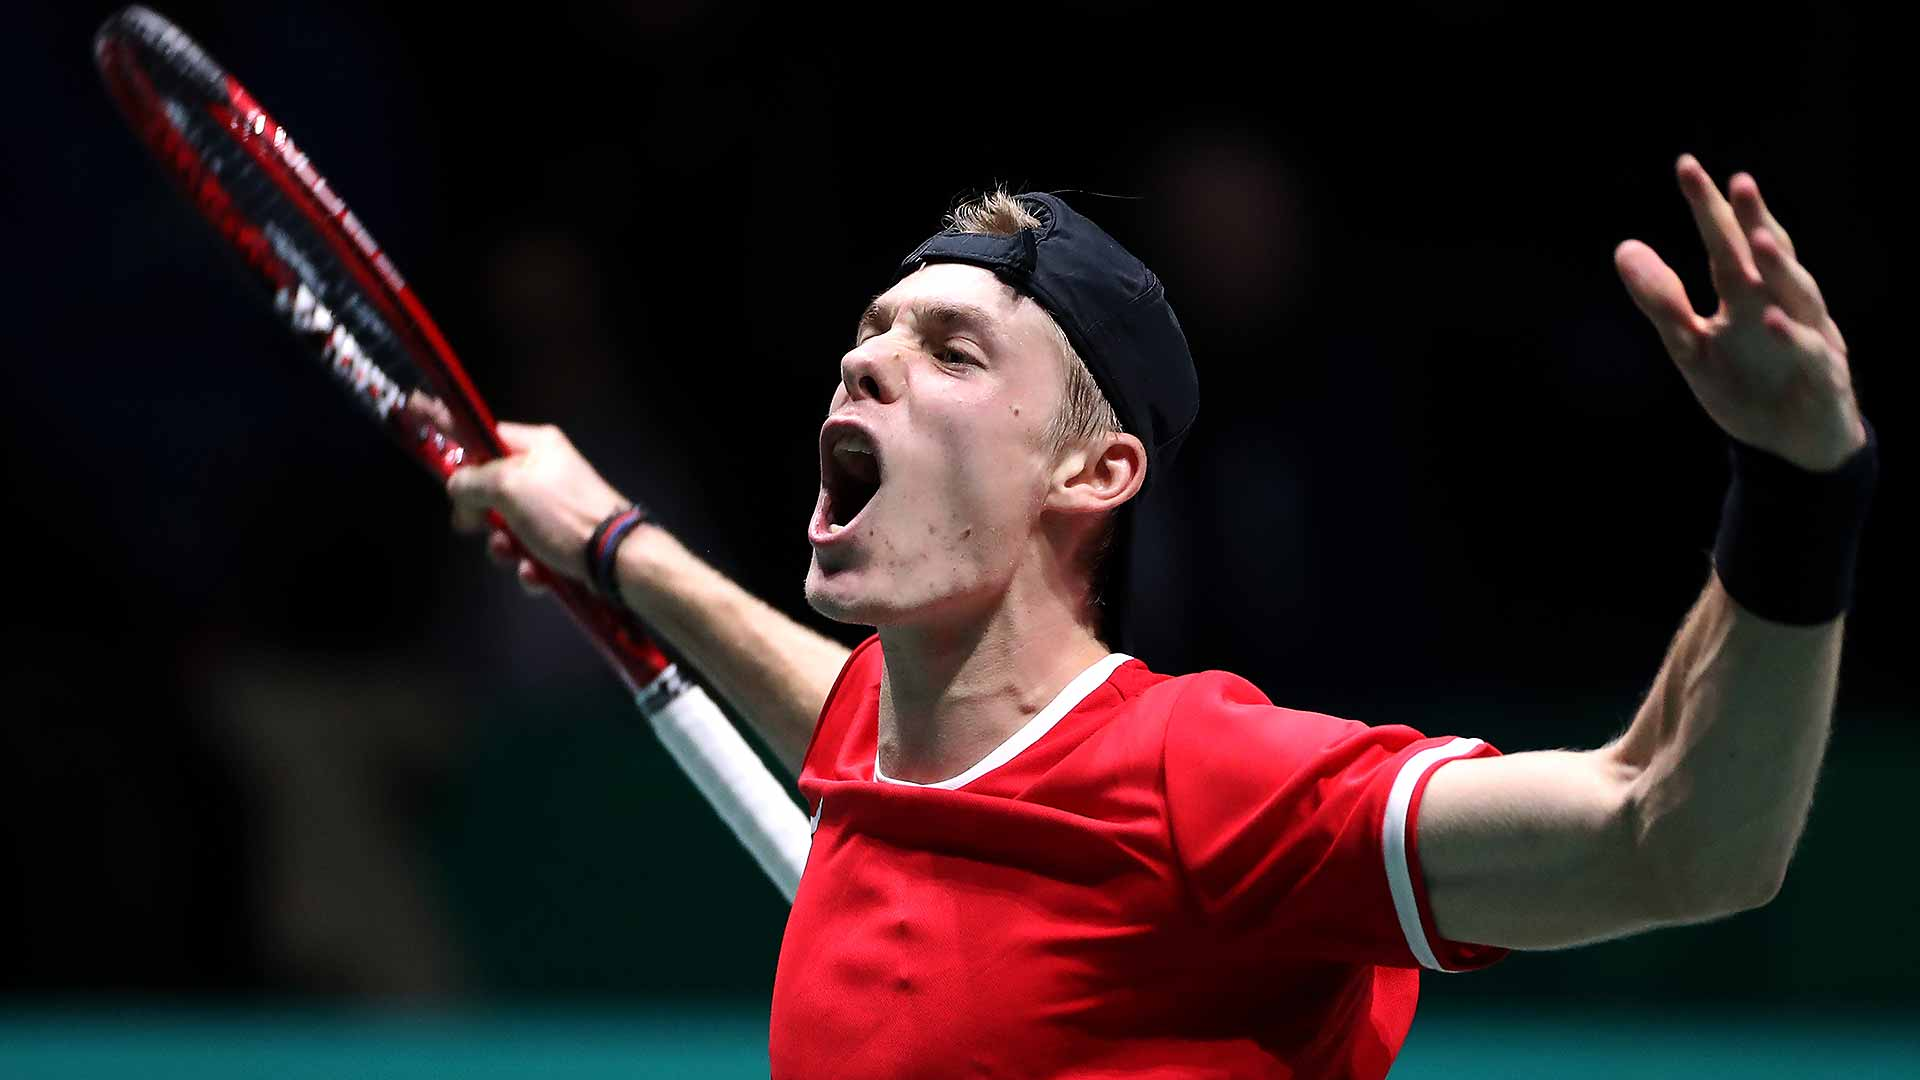 Denis Shapovalov improves to 2-0 against Matteo Berrettini in their FedEx ATP Head2Head series on Monday in Madrid.